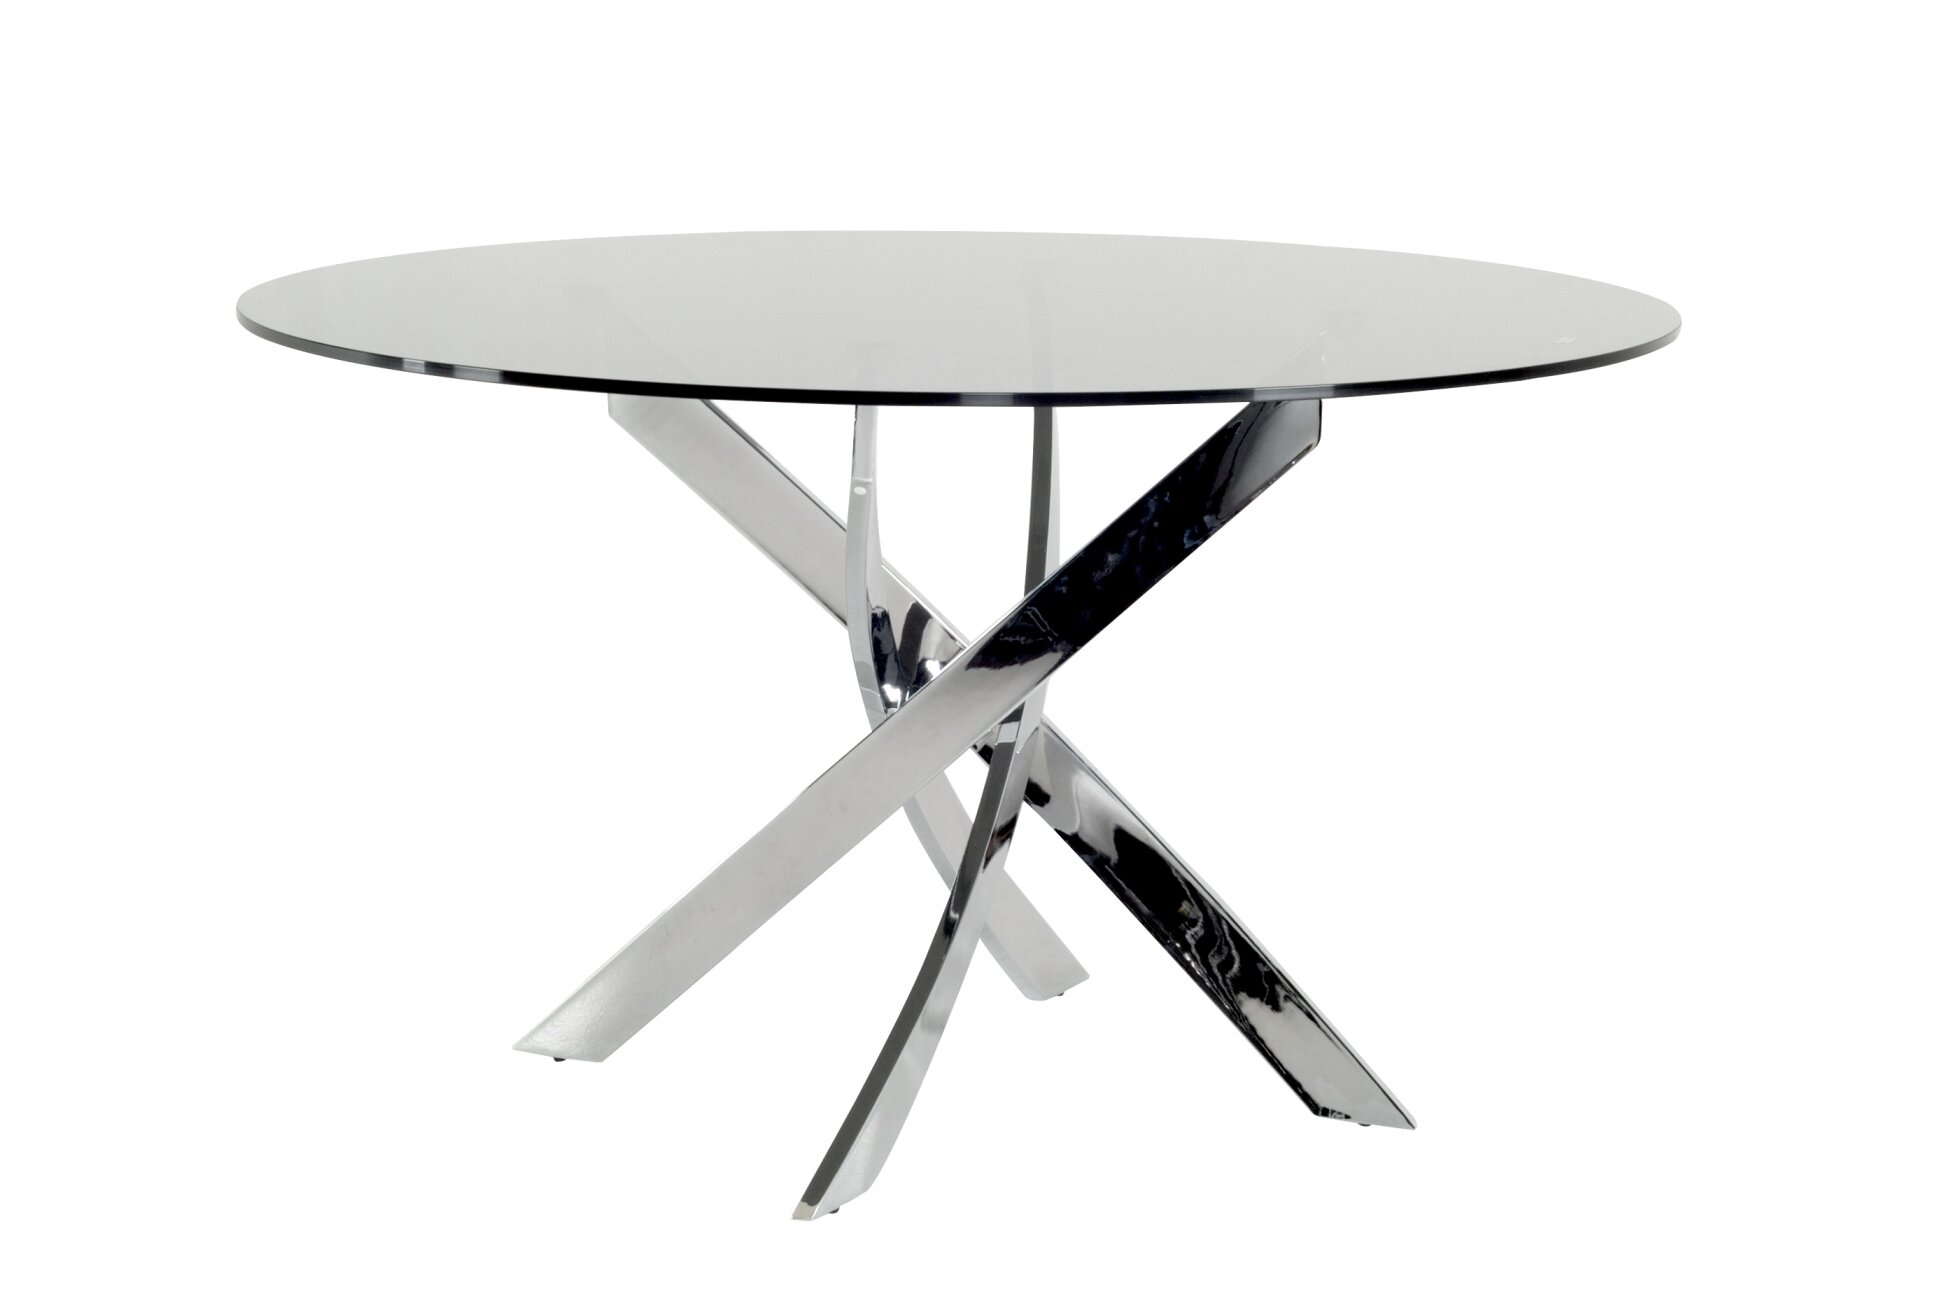 Orren Ellis Camron Modern Tempered Glass Top Dining Table Reviews